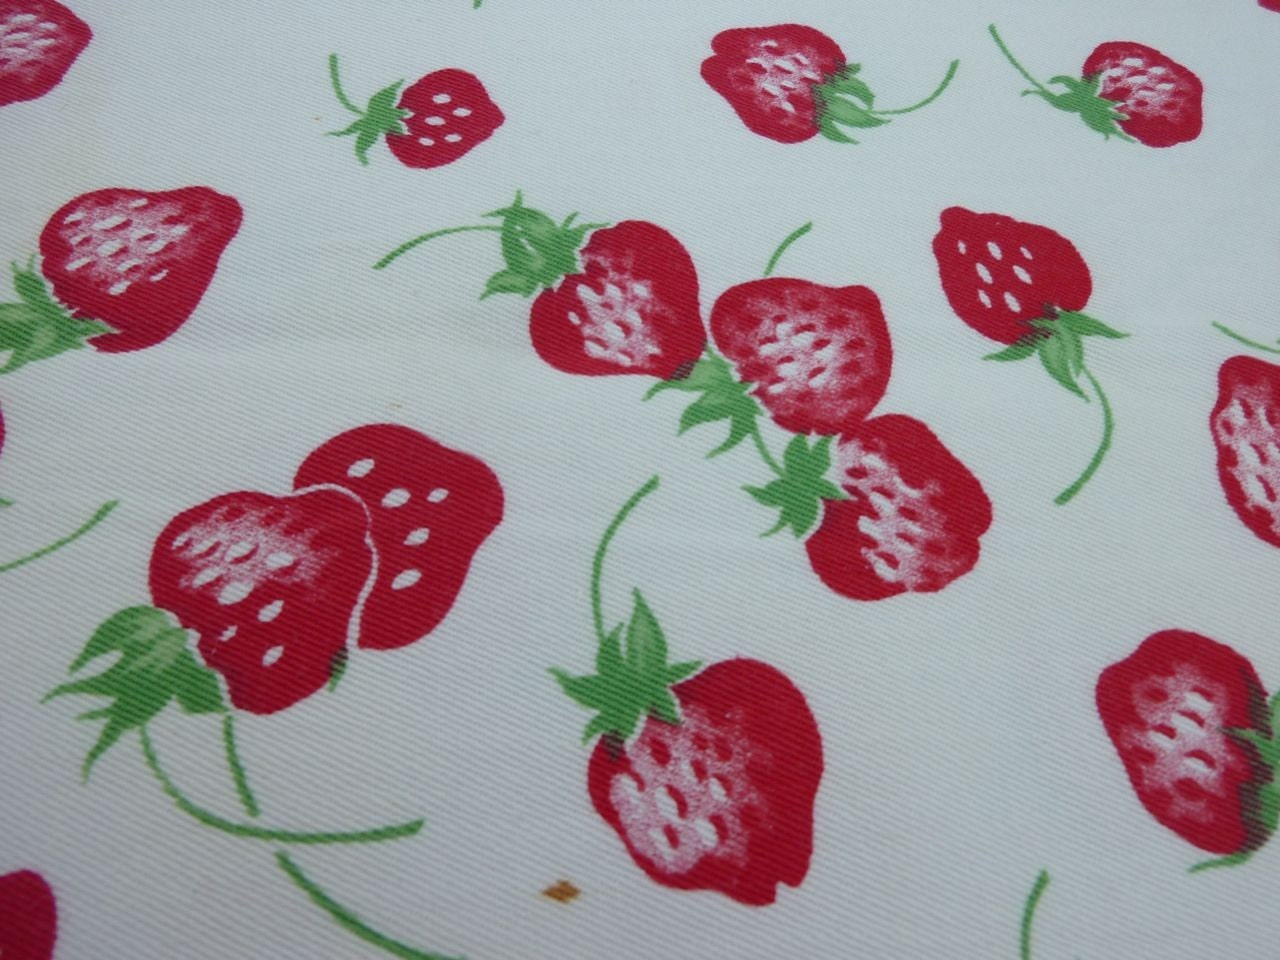 Vintage Strawberry Print Fabric For Kitchen Towels Yardage